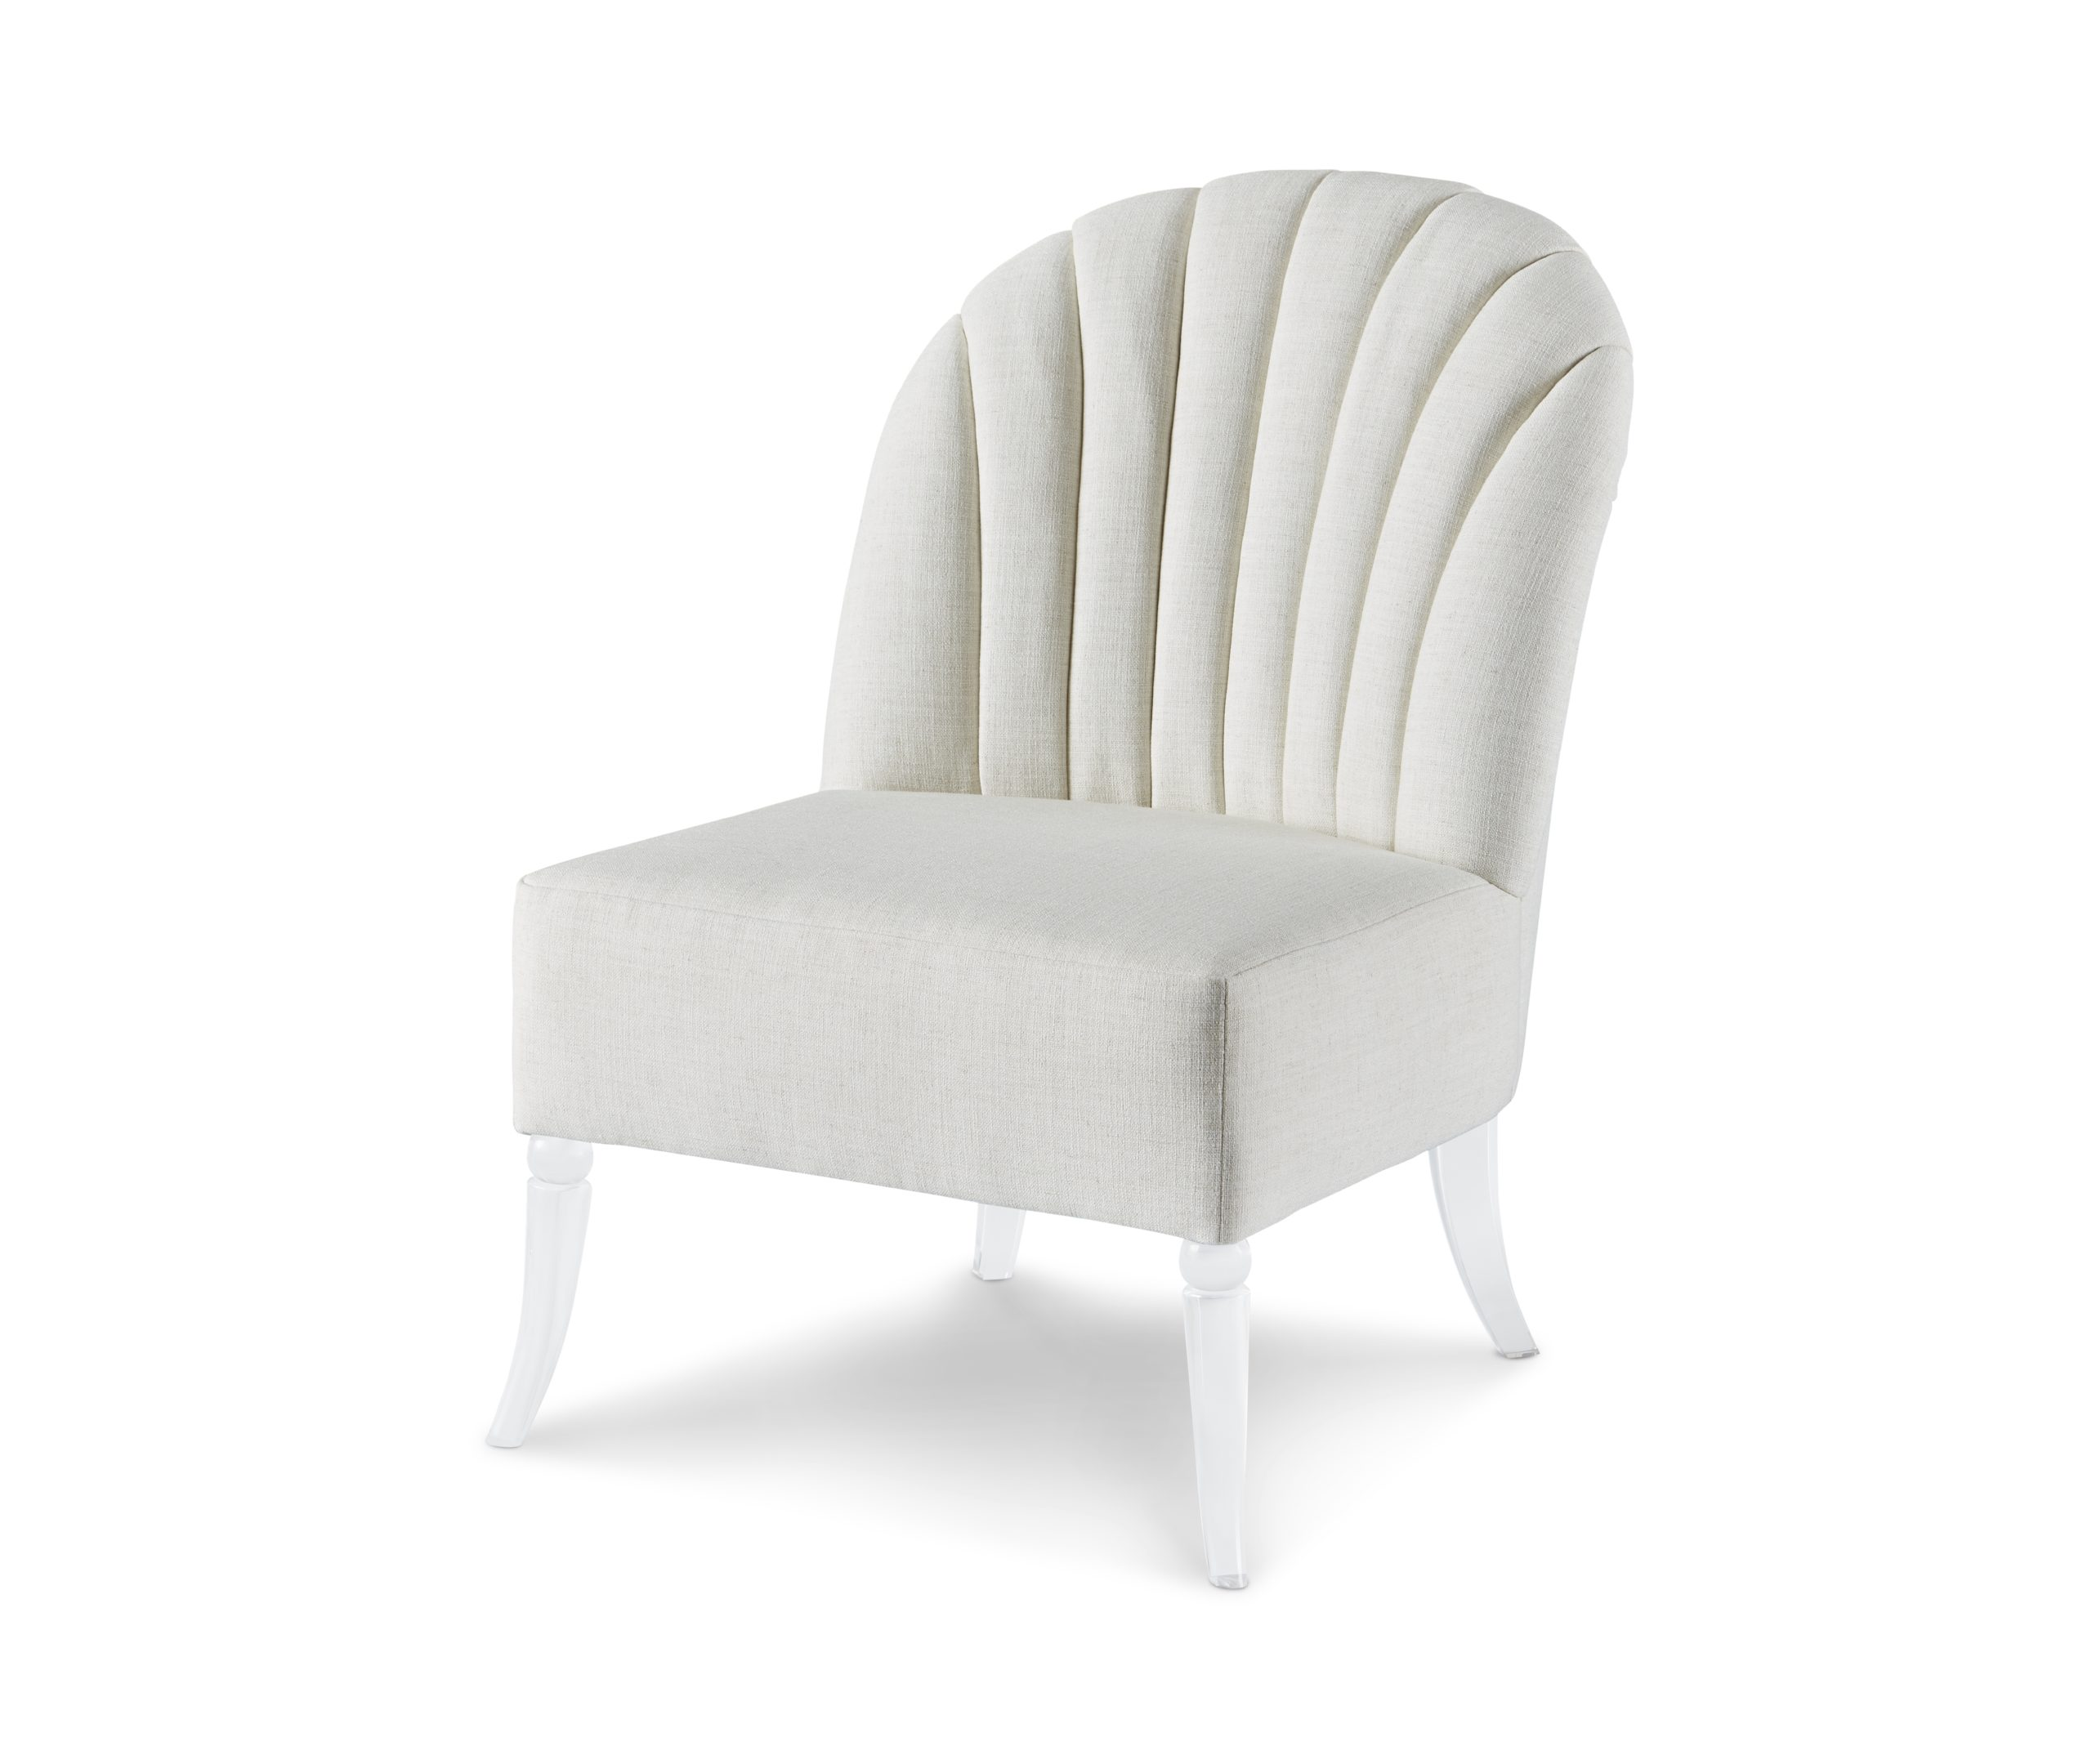 Baker_products_WNWN_lola_chair_BAU3310c_FRONT_3QRT-scaled-1